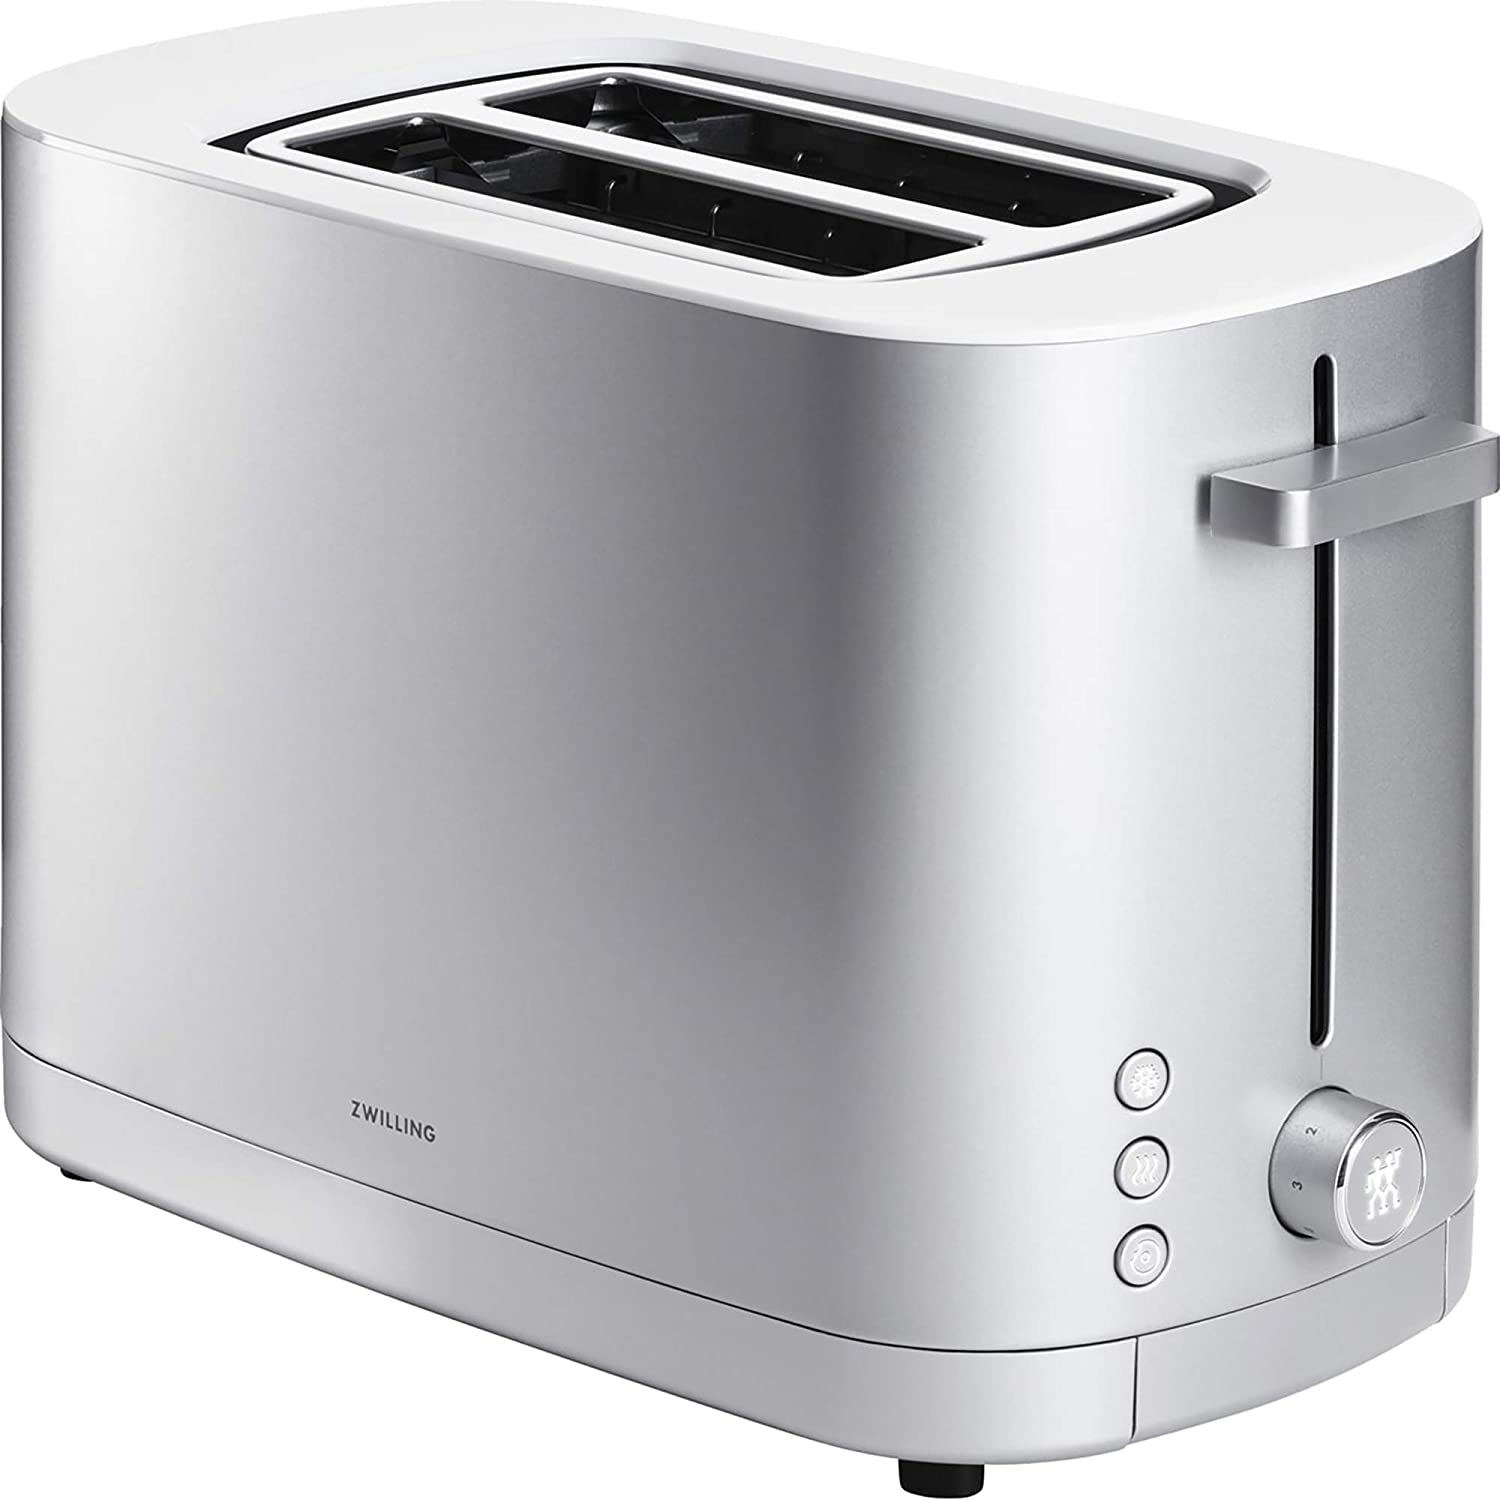 ZWILLING Enfinigy 2-slot Toaster - Silver